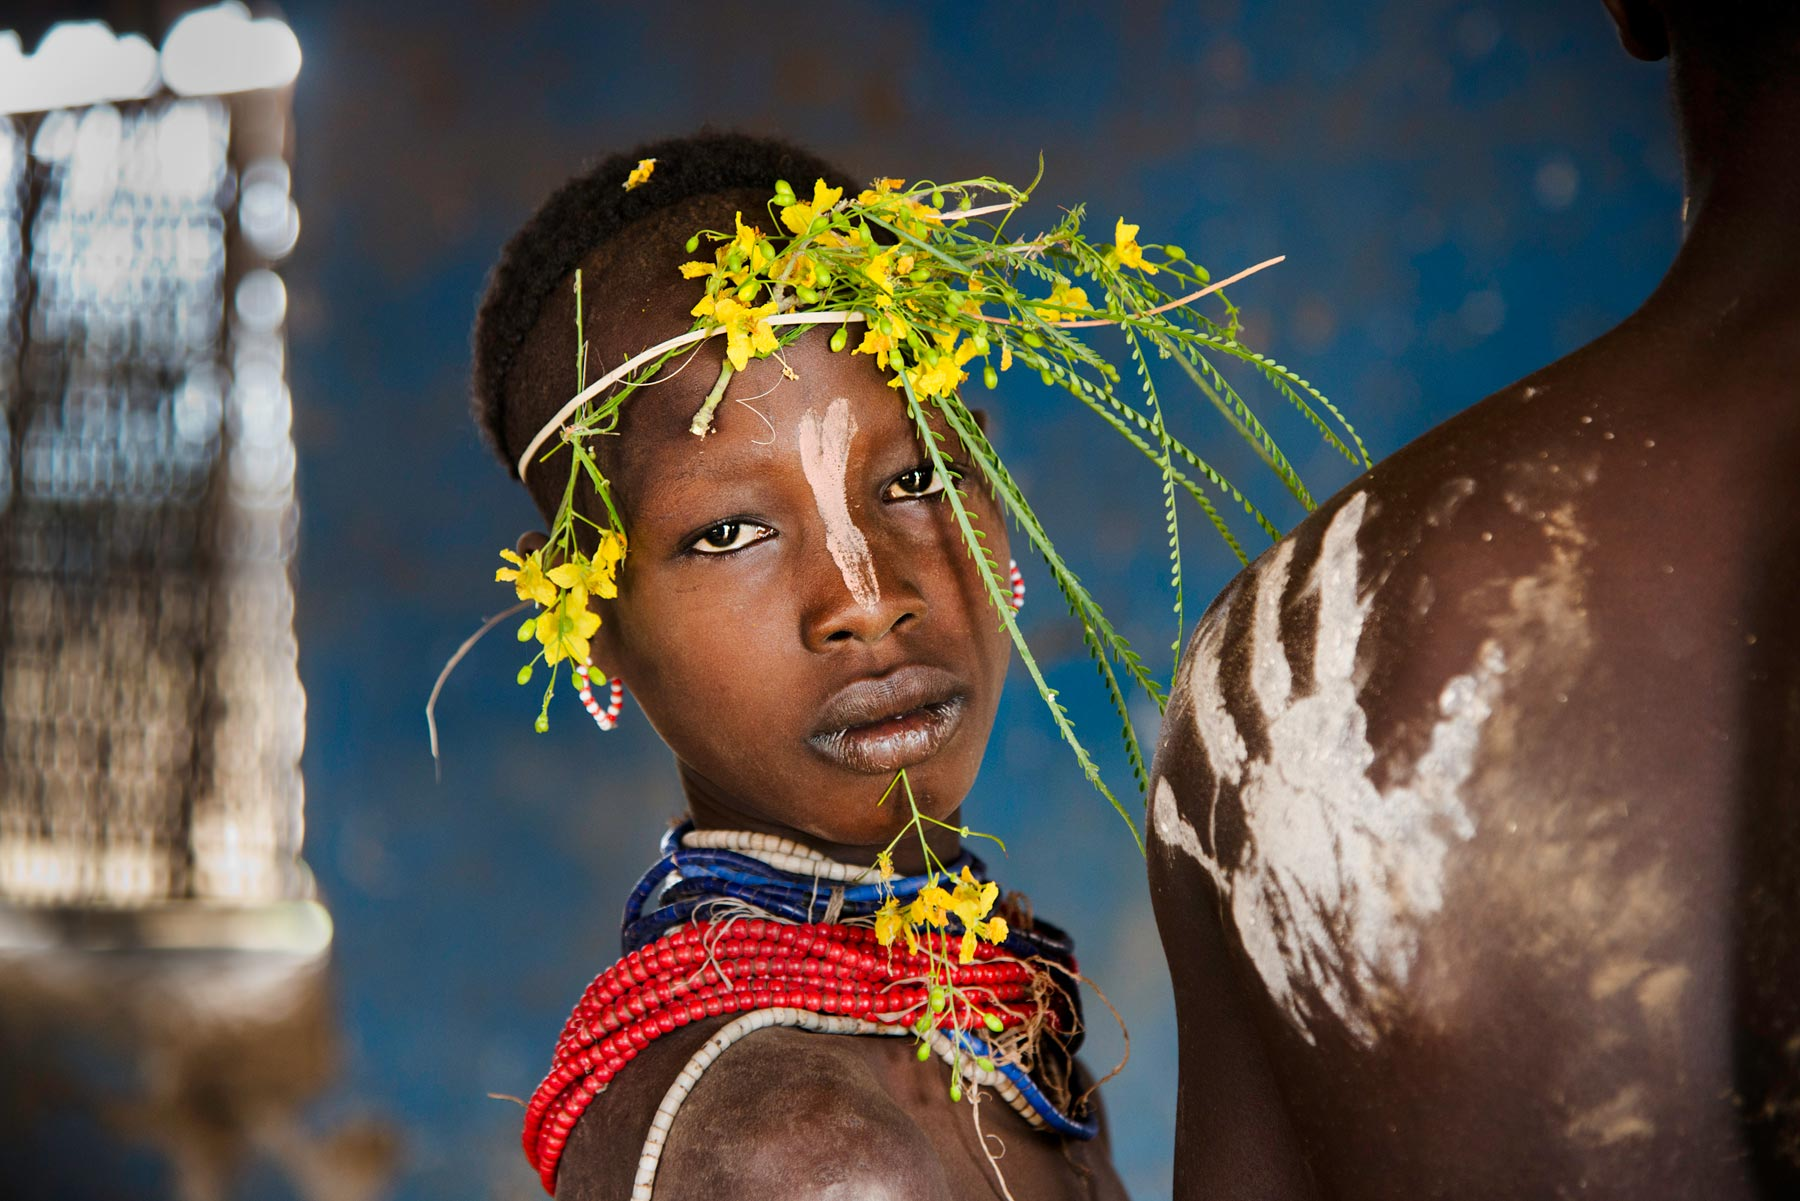 CHILD ADORNED WITH FLOWERS. Fuji Crystal. Limite Edition